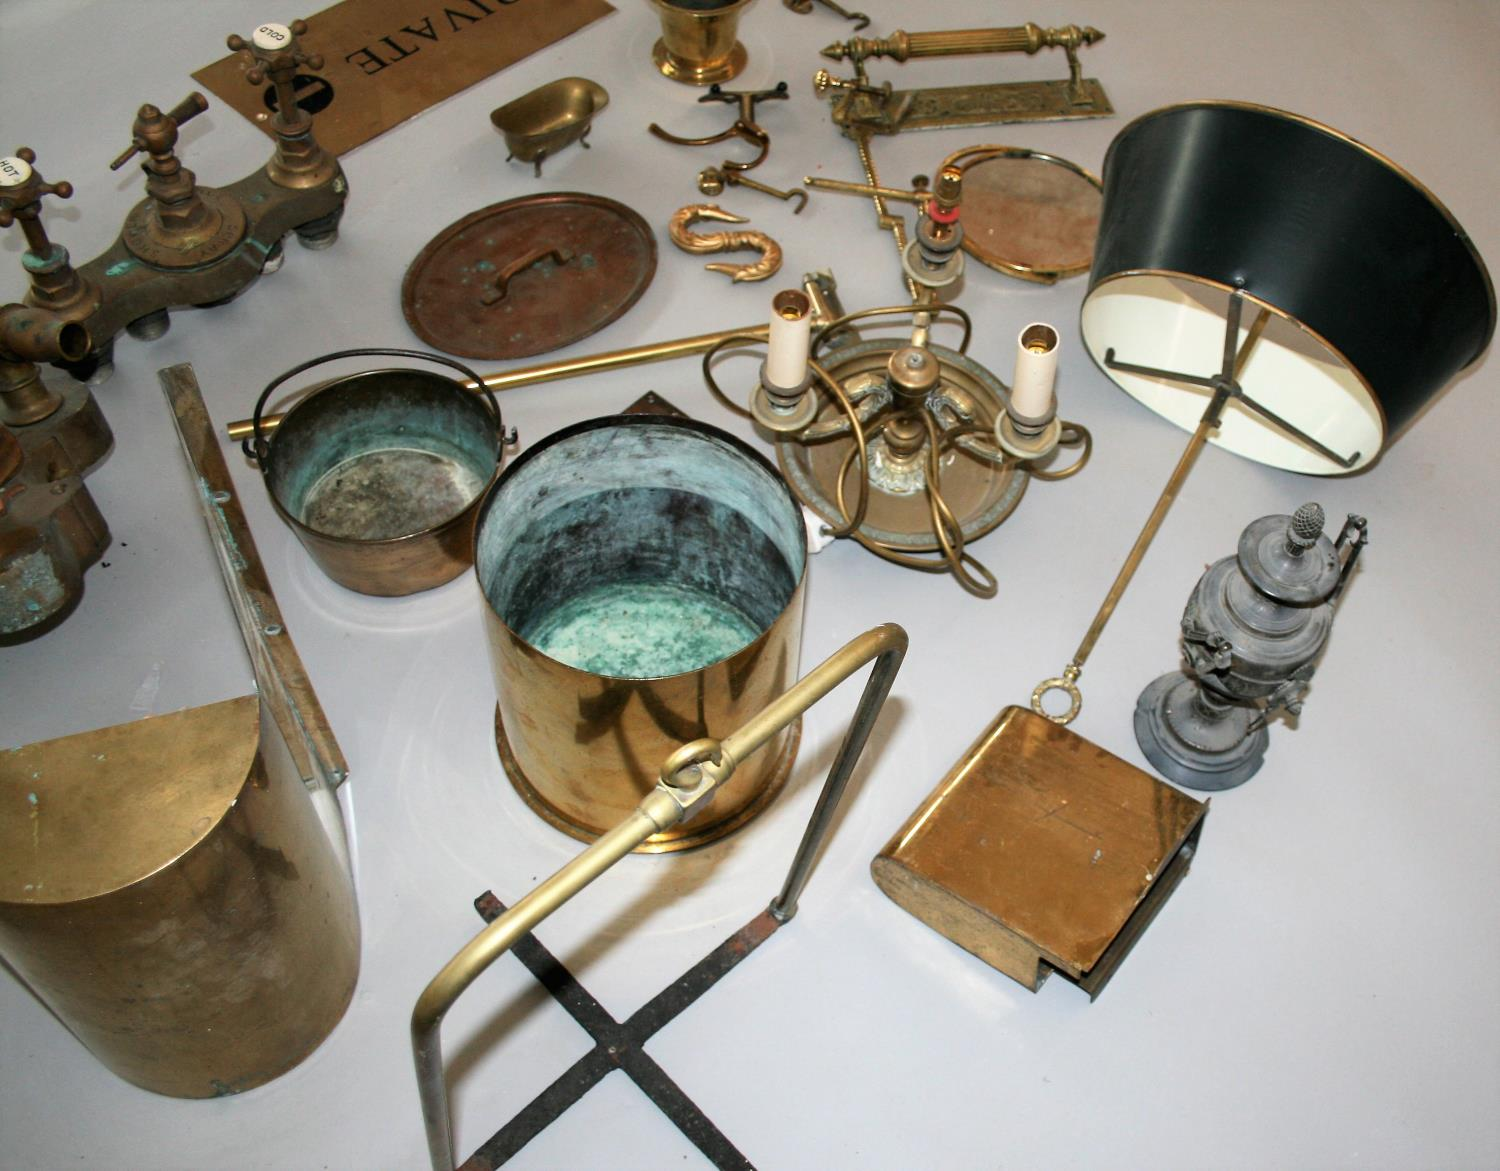 Collection of quality antique brass items, lamp, private sign etc - Image 4 of 4